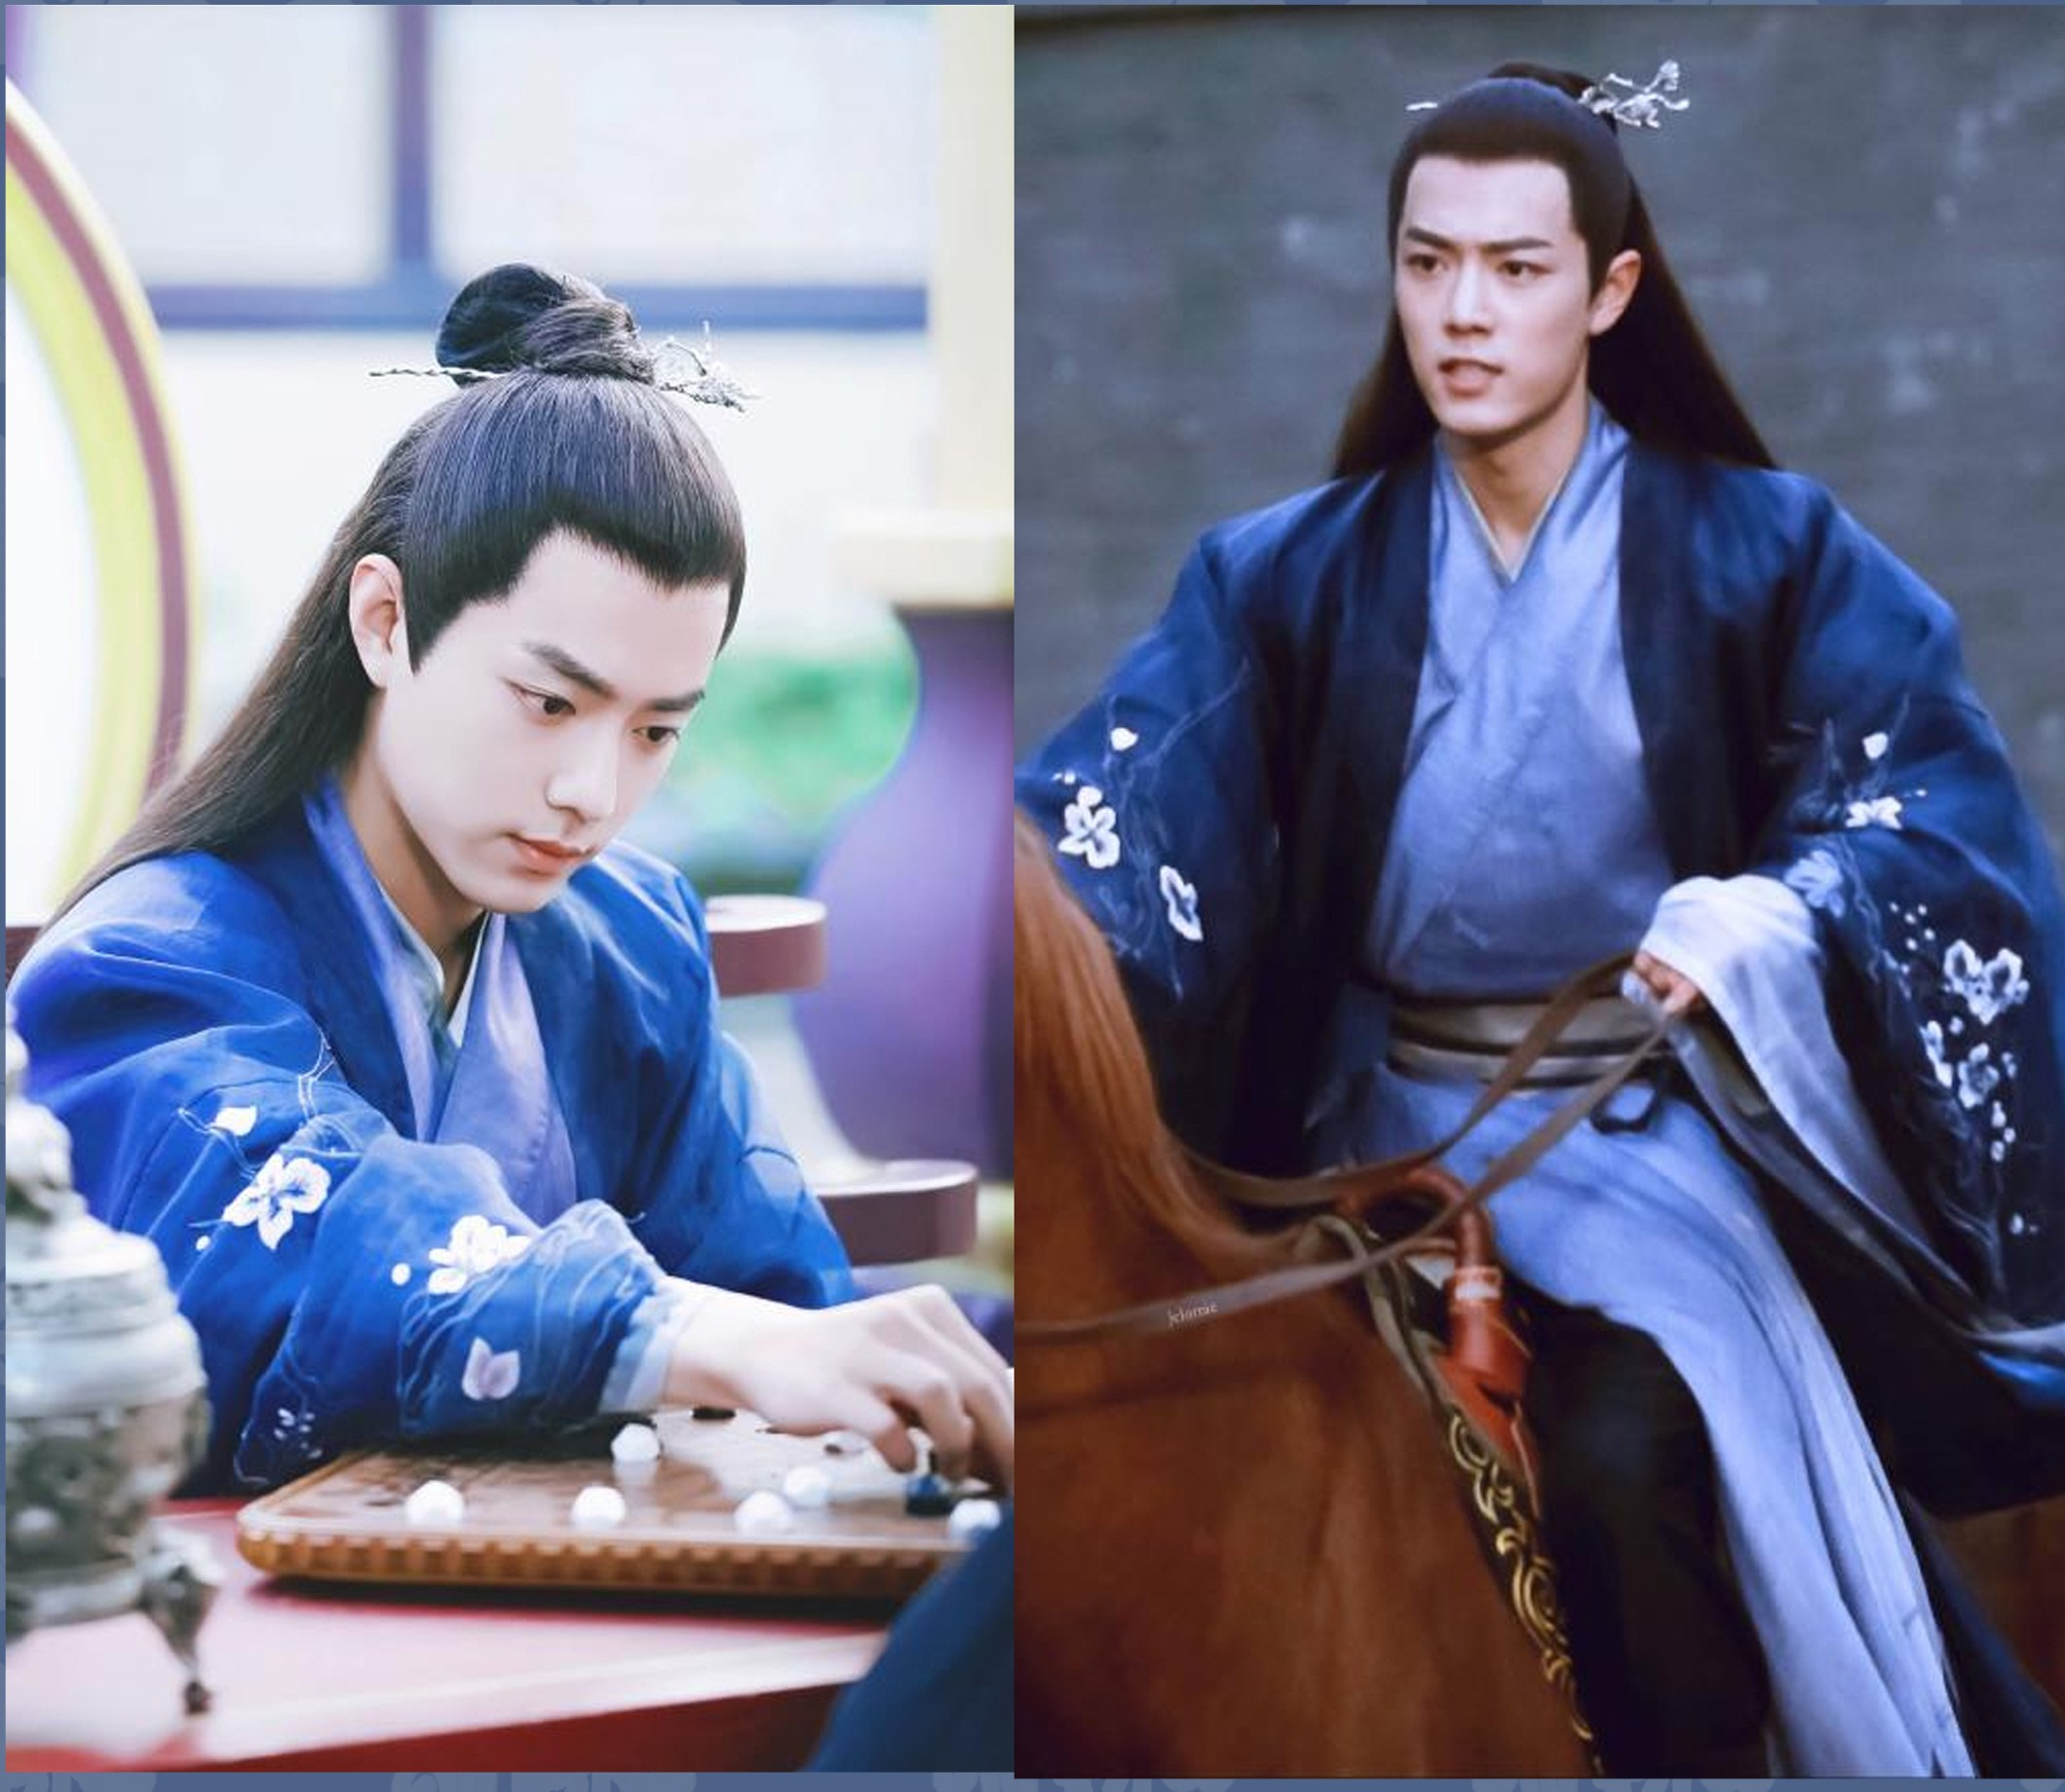 Beitang Mo Ran Blue Embroidery Plum Blossom Male Costume Hanfu For TV Play My Emperer Actor Xiao Zhan Same Design Cosplay Hanfu